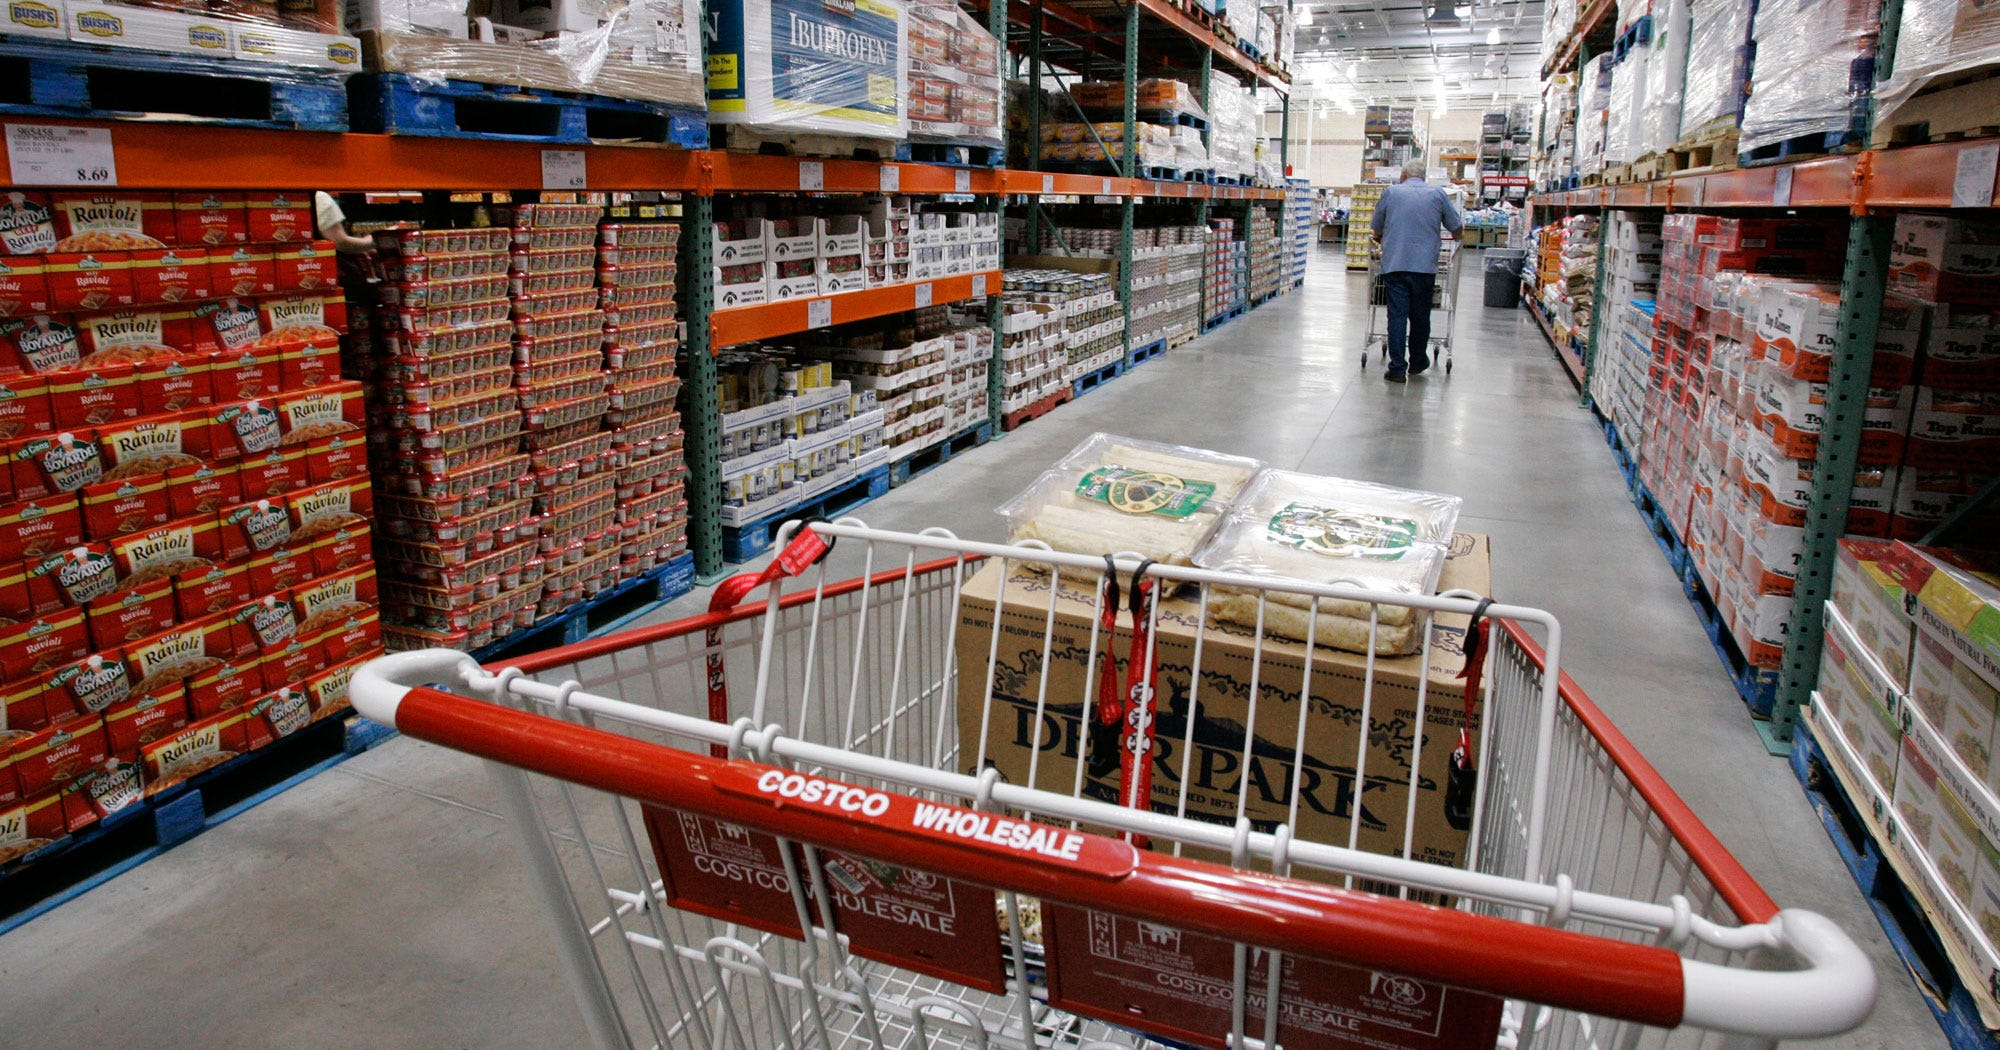 Costco Employees - Big Box Store Working Experience